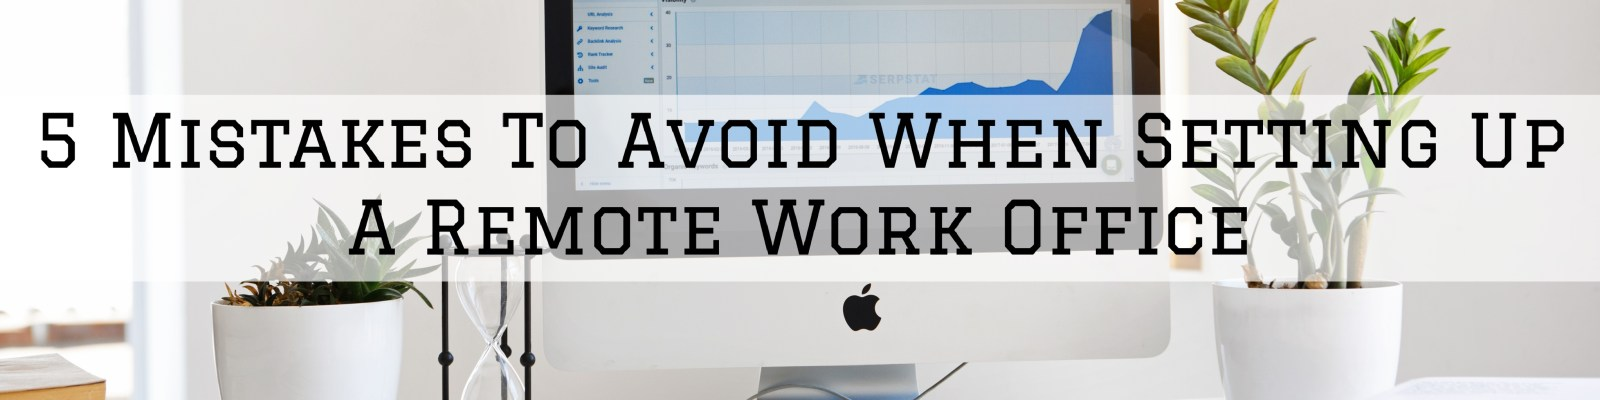 mistakes to avoid when setting up a remote work office